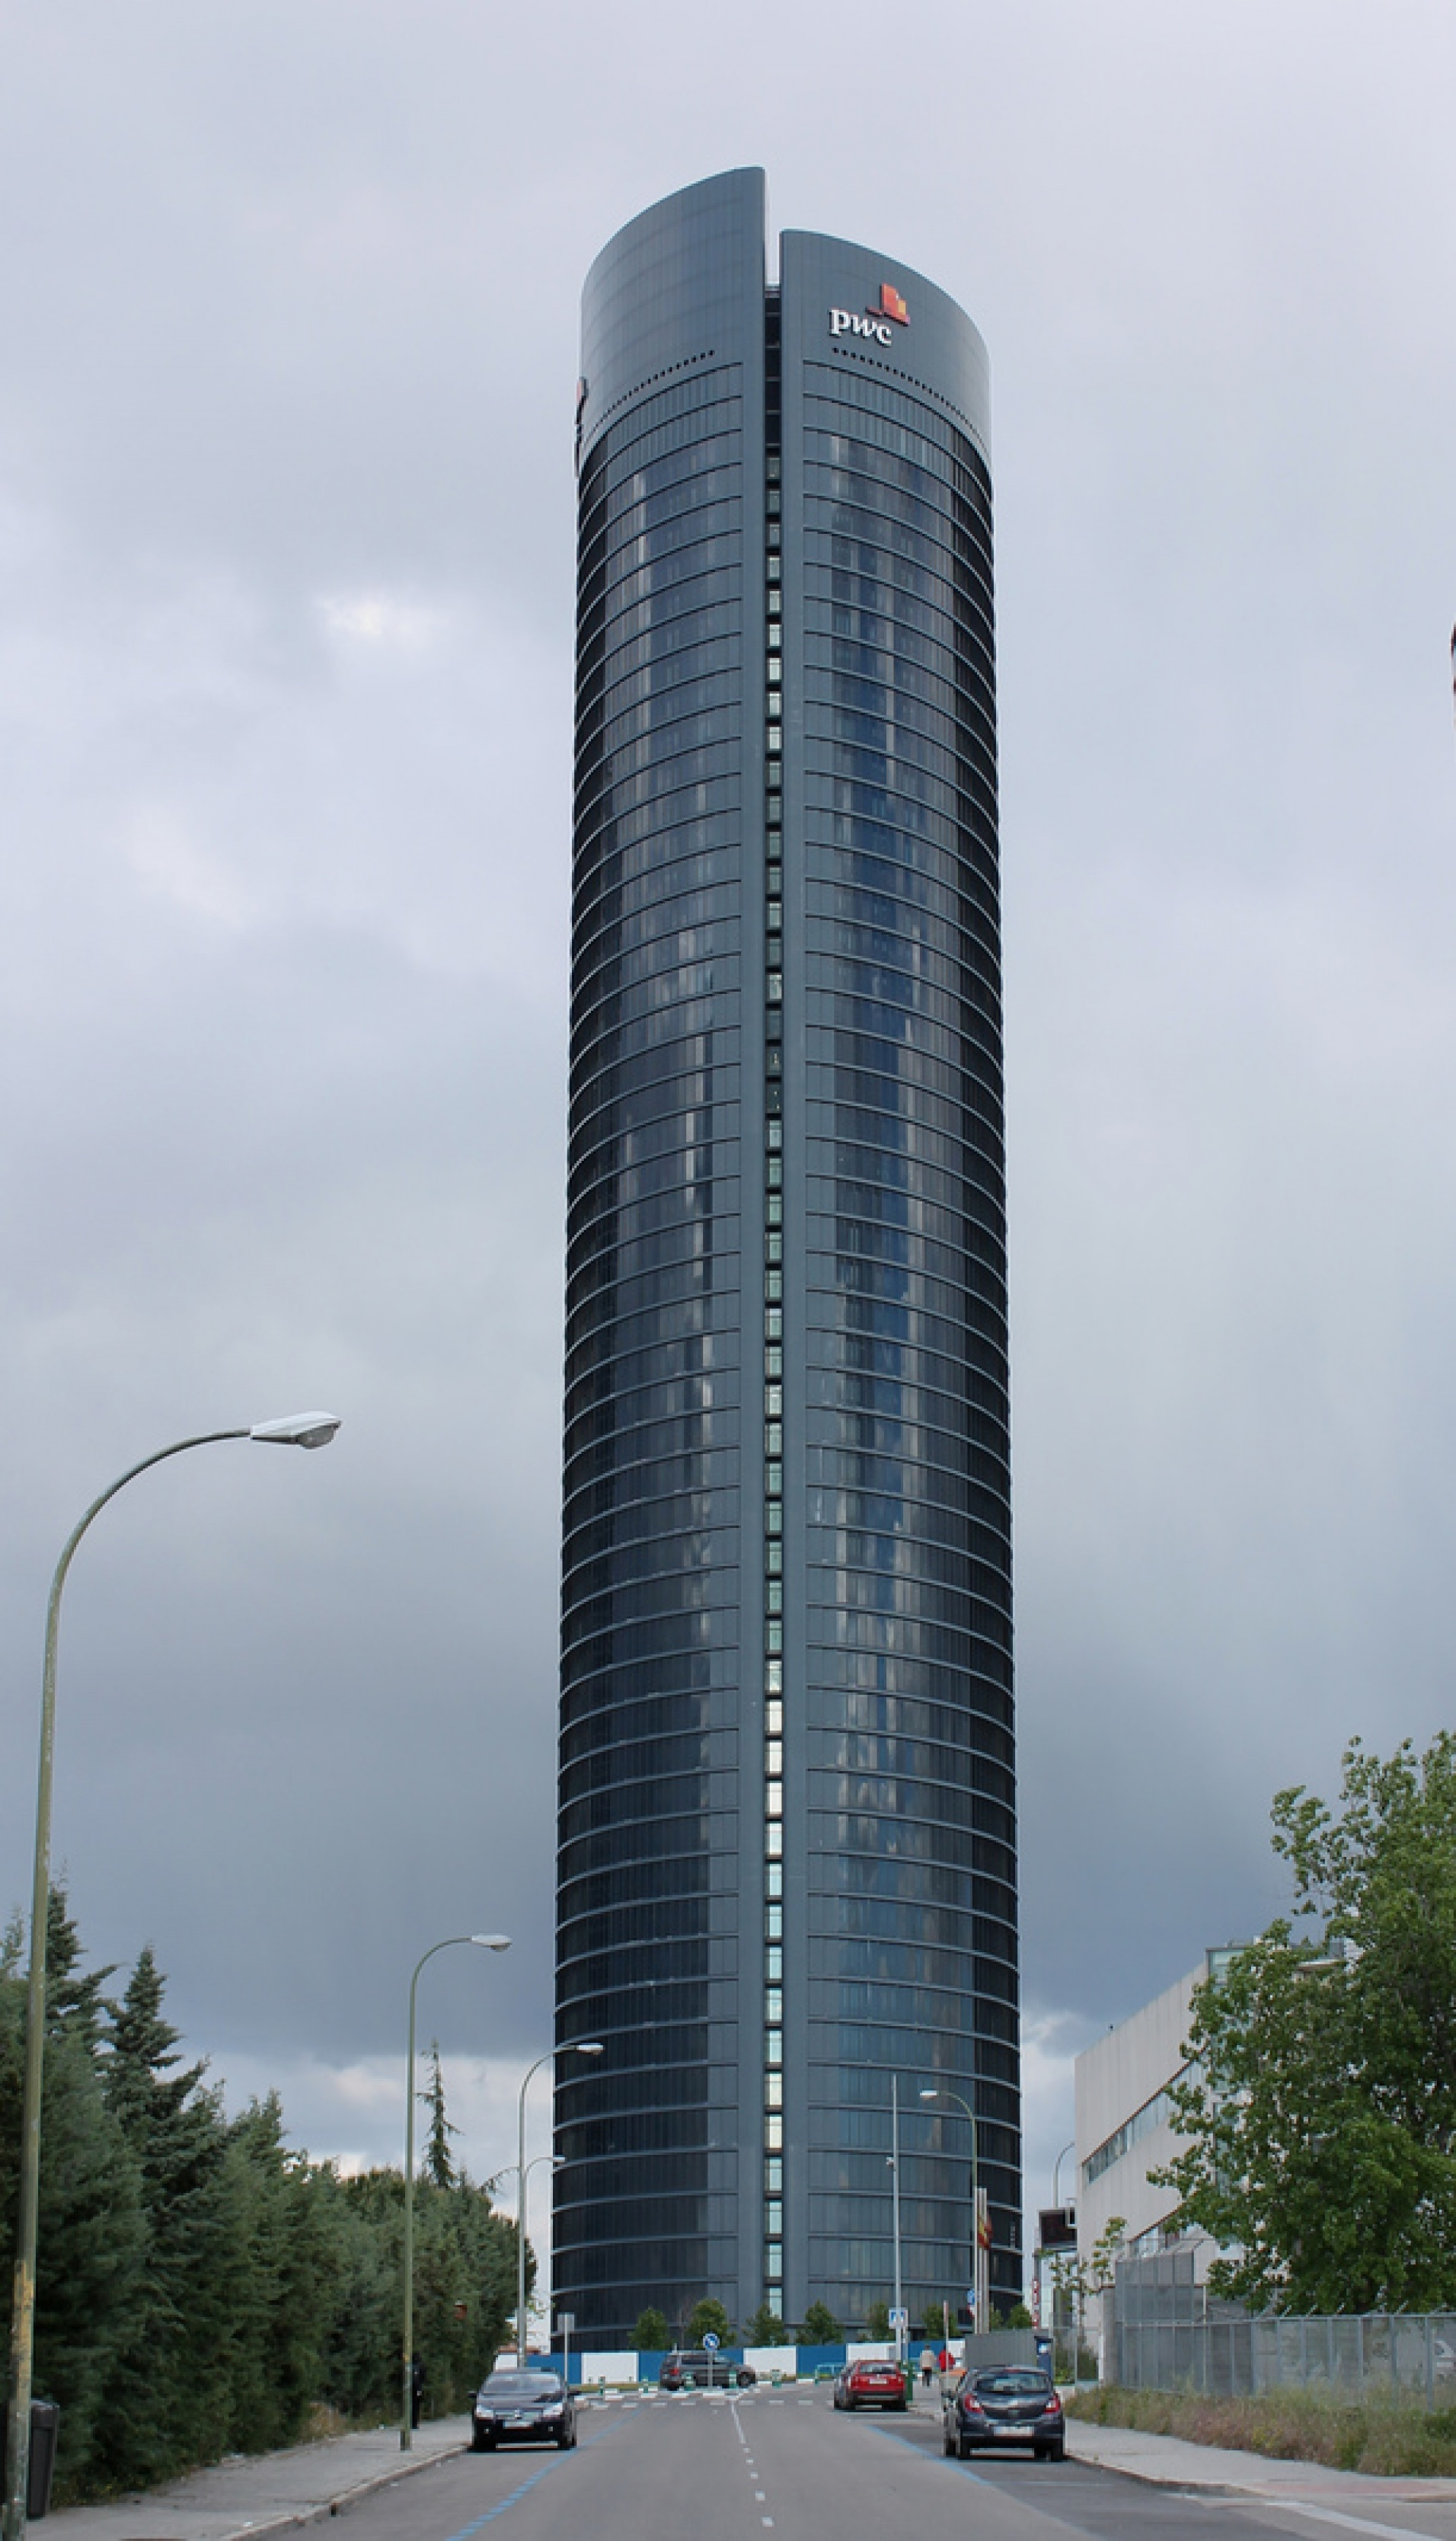 PwC Tower in Cuatro Torres Business Area in Madrid (Spain).